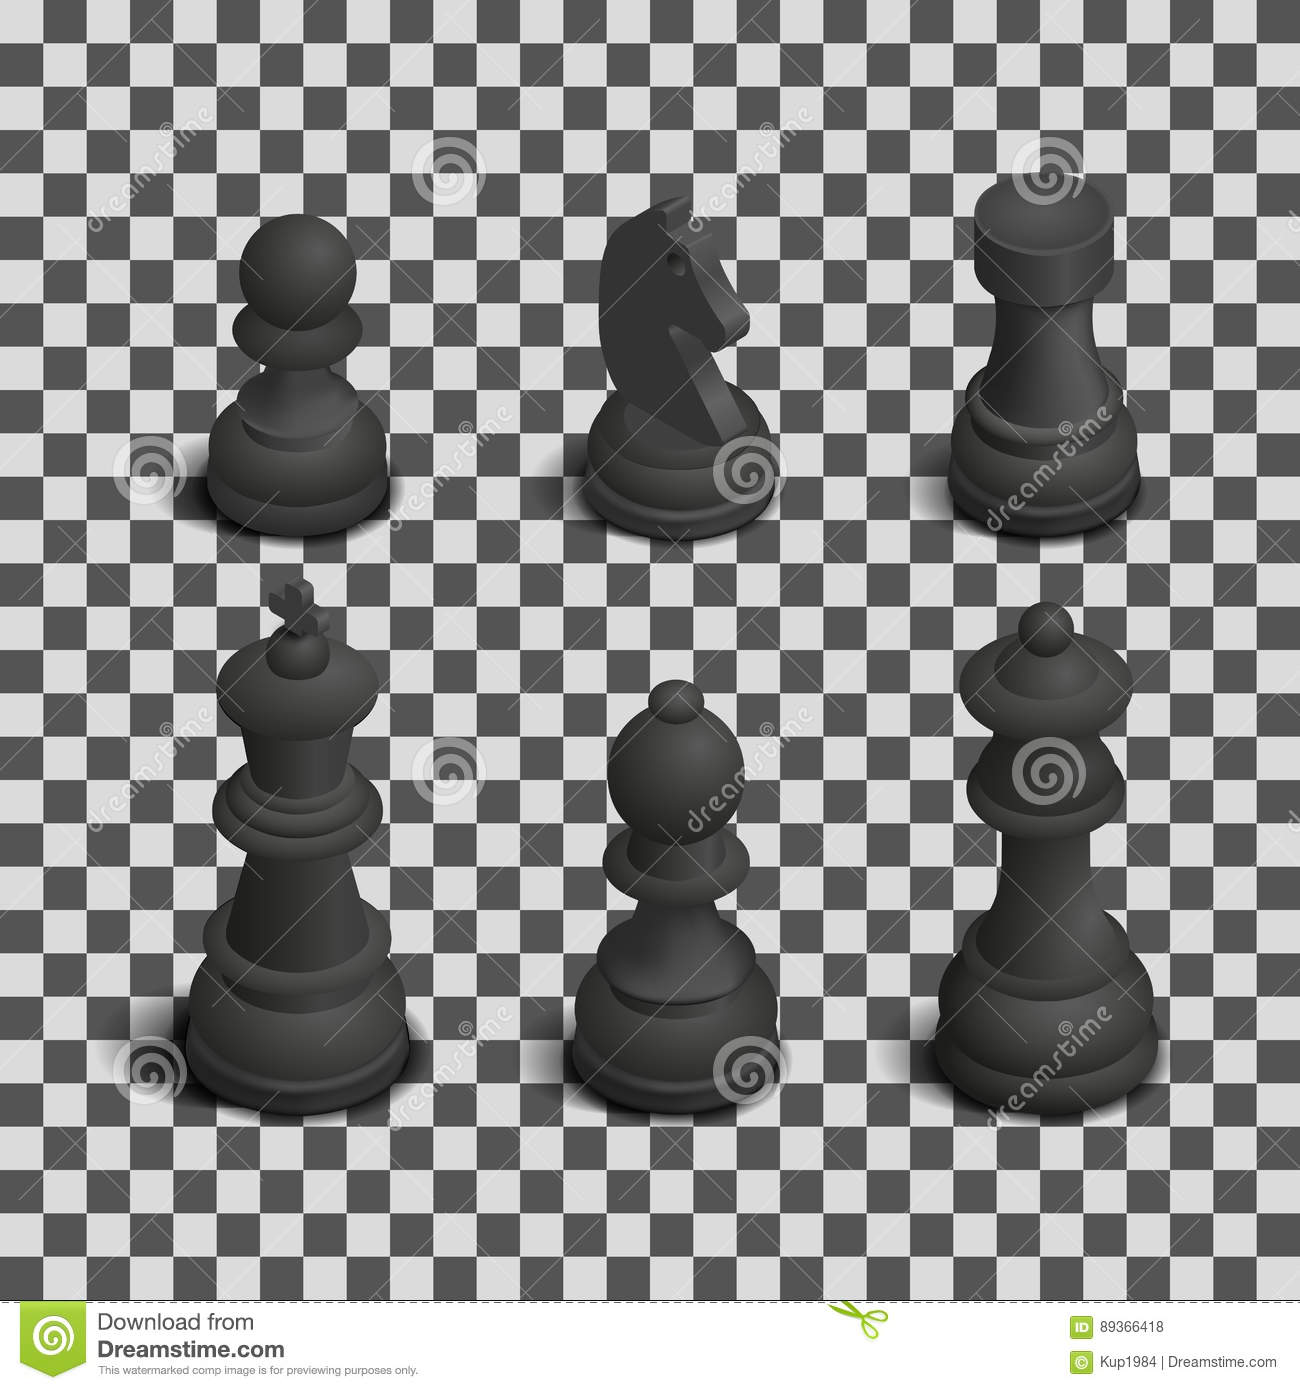 Photo Realistic Black Chess Pieces. 3D Isometric Style, Vector Illustration.